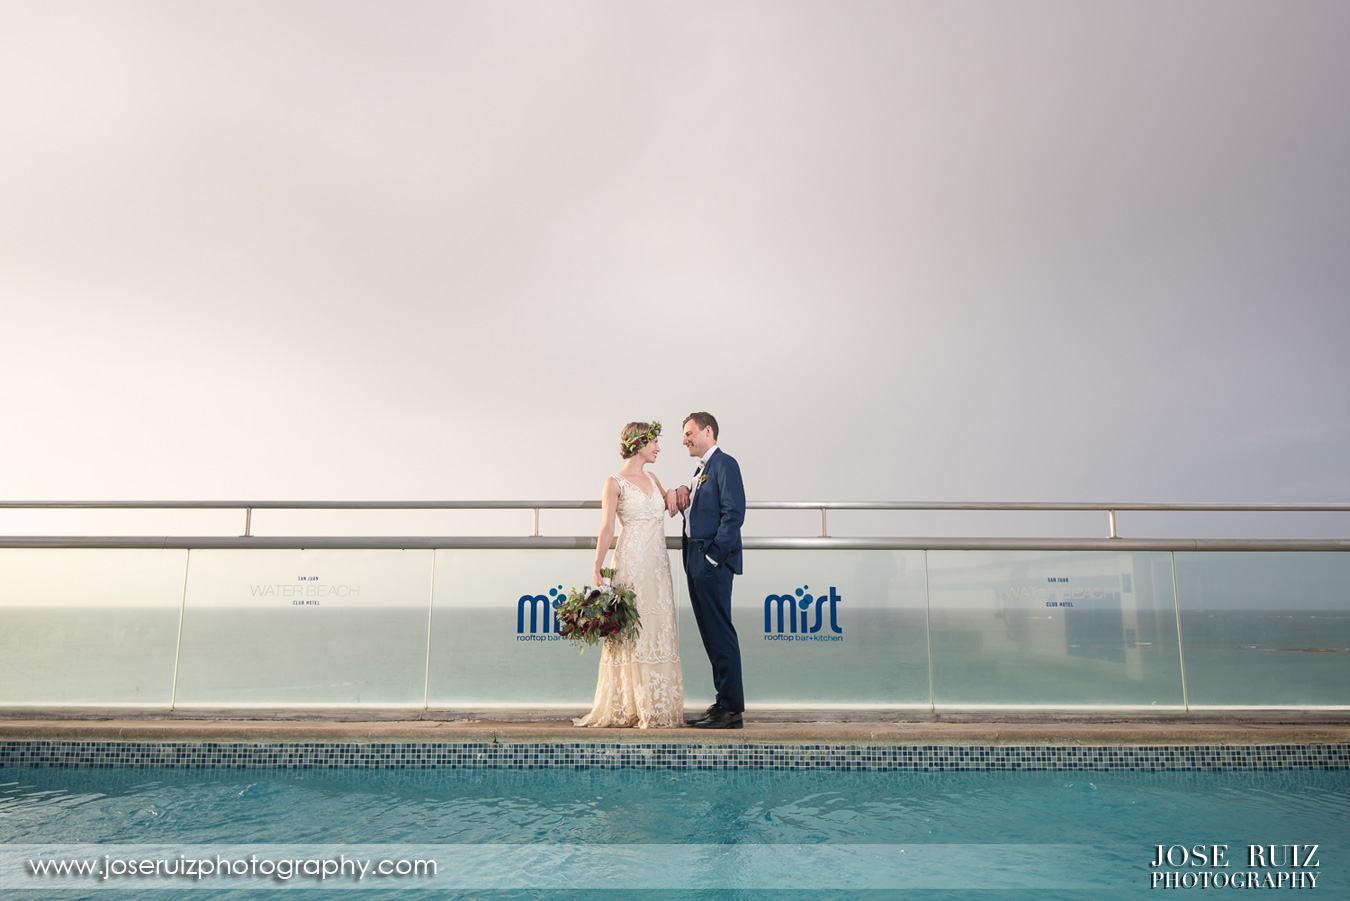 Wedding-in-Water-Beach-Club-Hotel,-Misty-and-Cory-0027.jpg